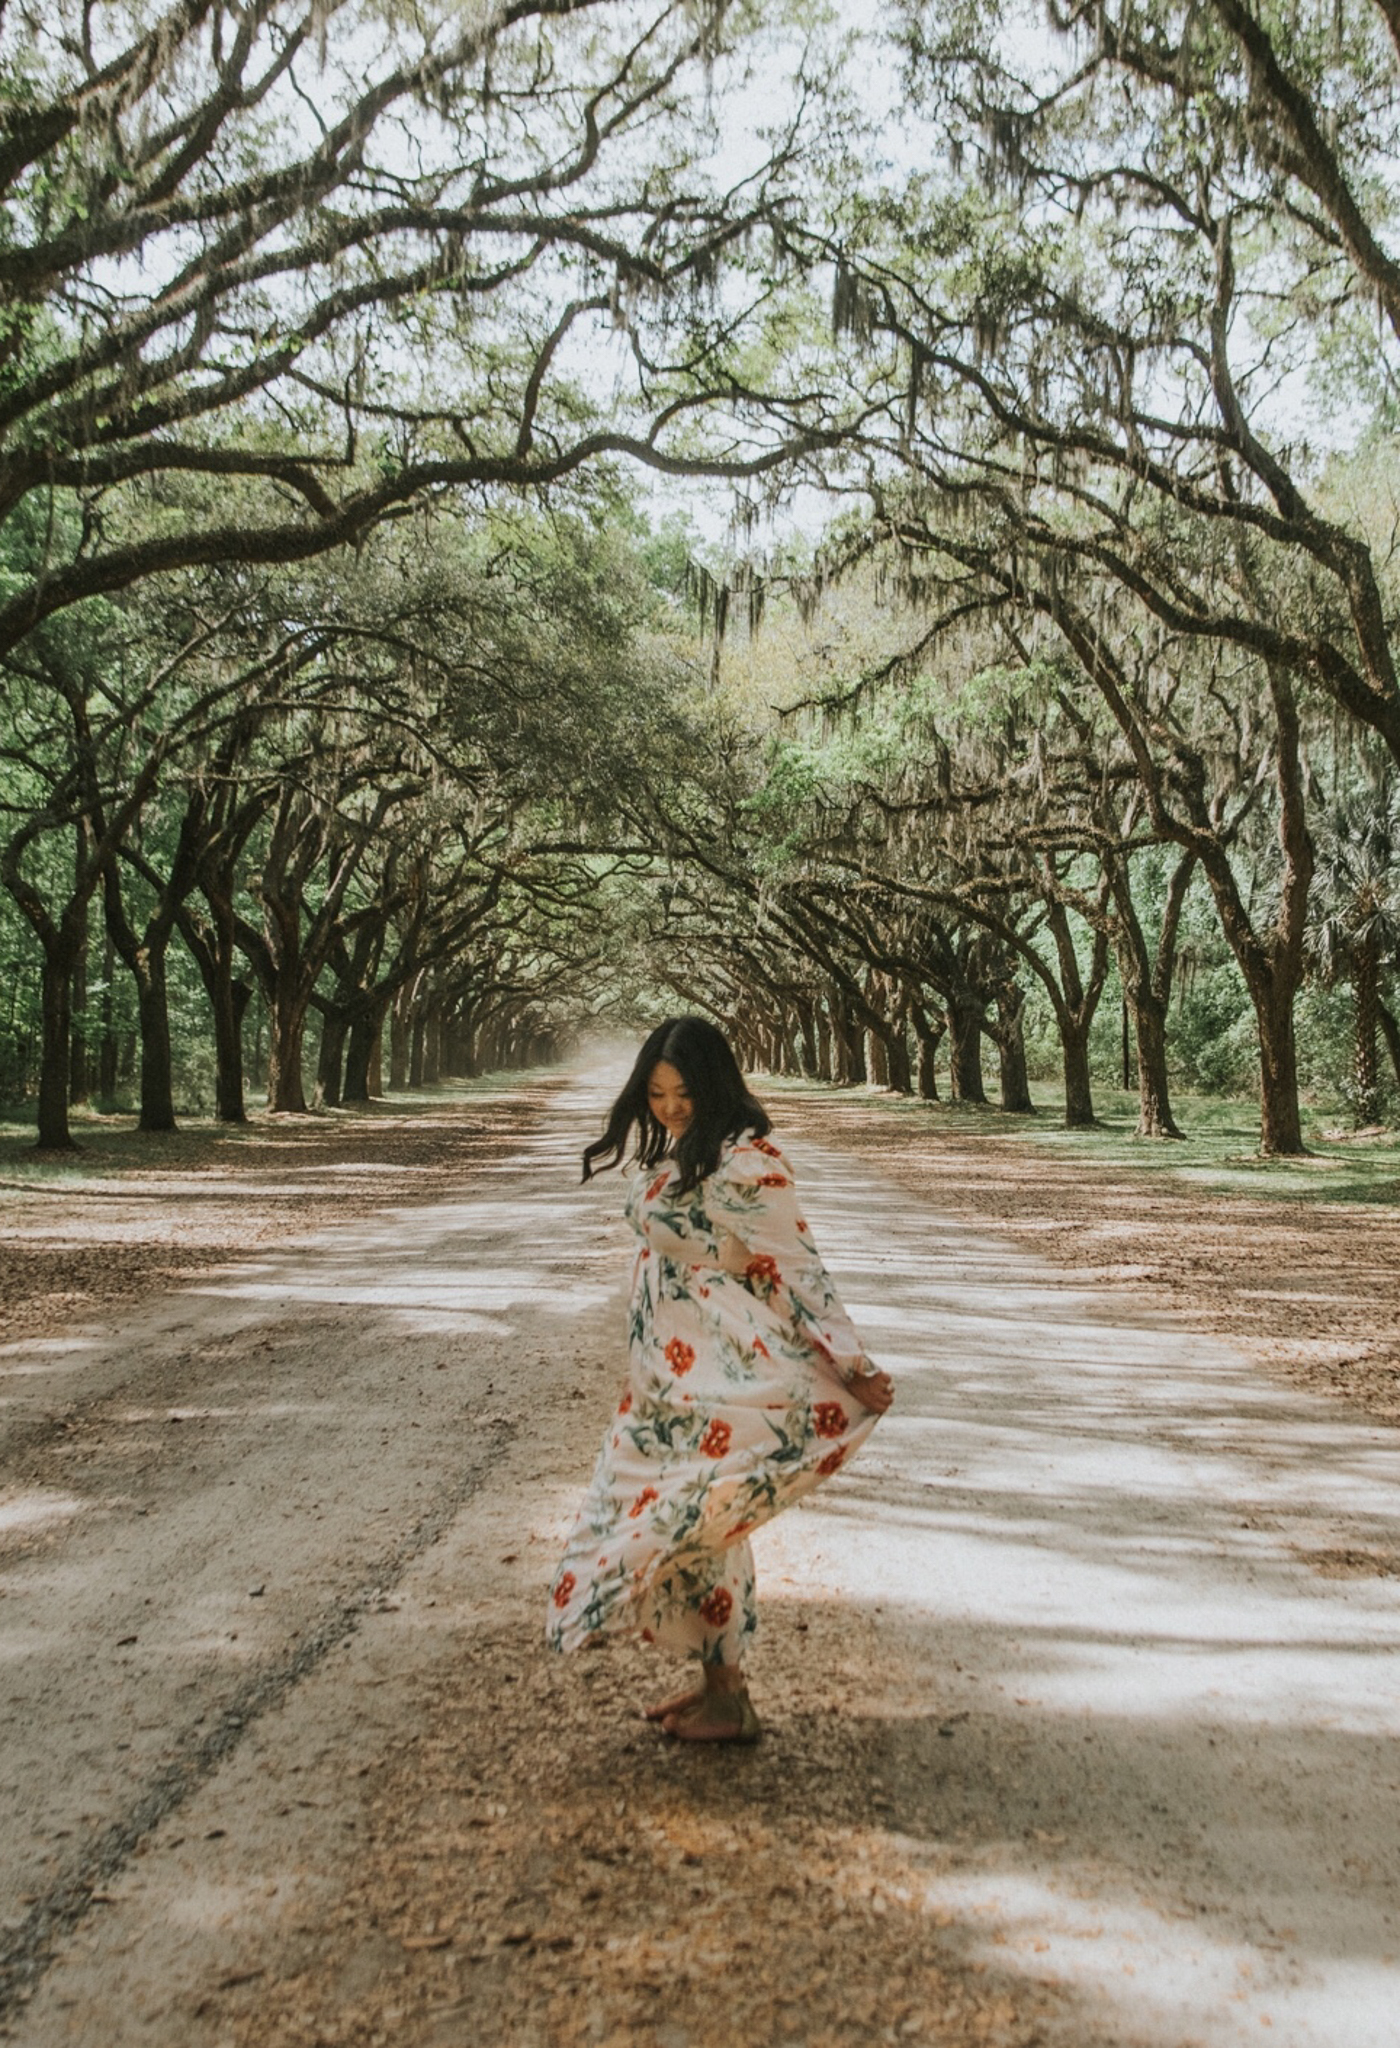 If you want to, do it for the photo (proudly). - Friends, if you want a cute photo of you or your family it's okay to intentionally pack/wear an outfit for a specific location or day. I knew that we wanted to visit this row of oaks in Savannah and loved the idea of this flowy, floral maxi there. Did I wear this dress for that purpose? Yep. Did I wear it romping through the woods on the grounds? Yep. While it doesn't need to be the focus of your trip, it's okay to dress for the photo opp without shame.Tip #5-Be okay with wearing a cute outfit with a photo in mind. No shame in the game.PS-Wasn't alone. While we were there someone showed up in full glam for a quick photo in front of the trees before heading into the museum. You're my kinda people.